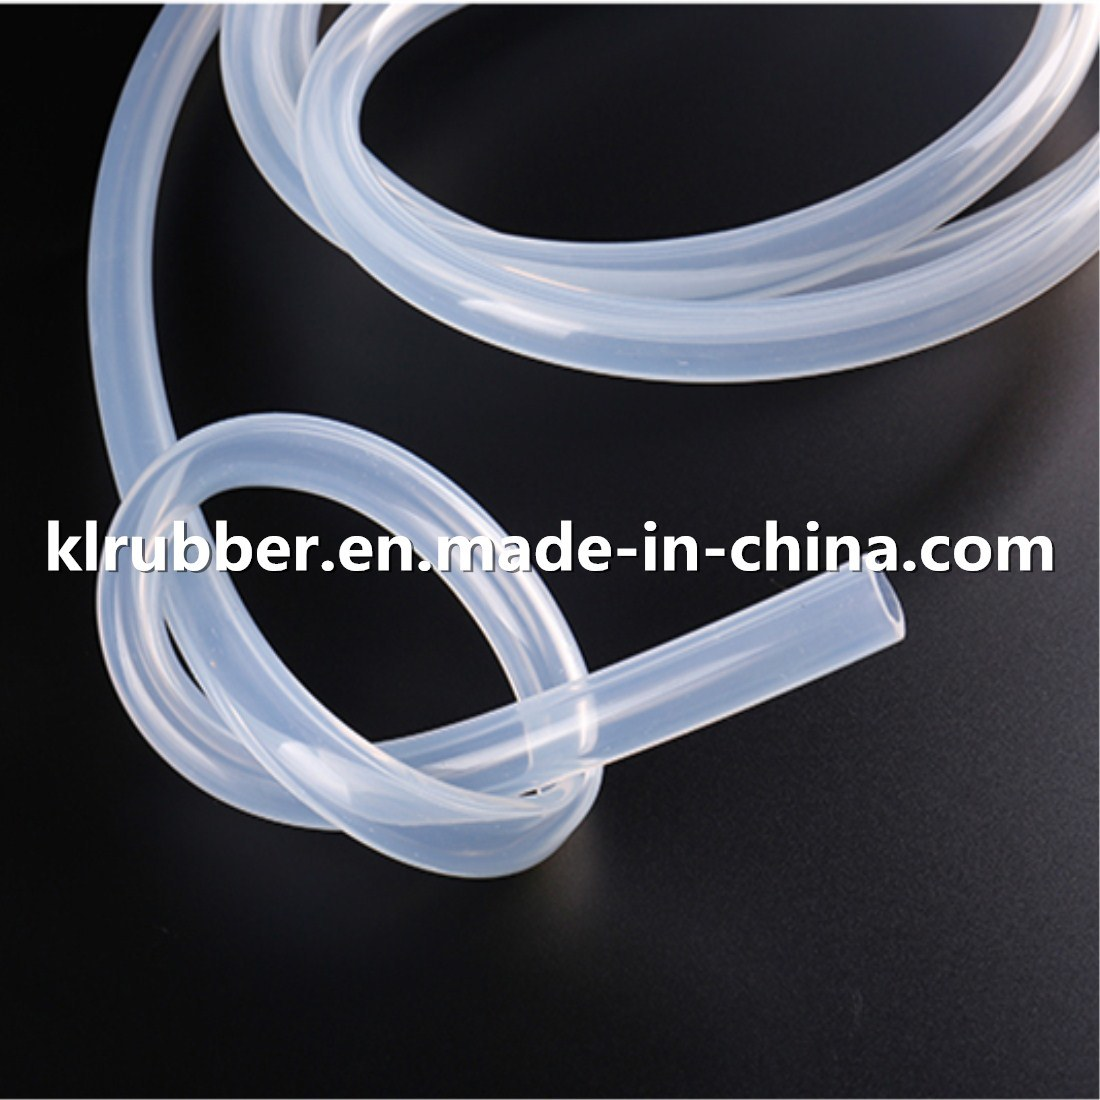 Food Grade Platinum Cured Transparent Silicone Rubber Hose for Coffee Machine